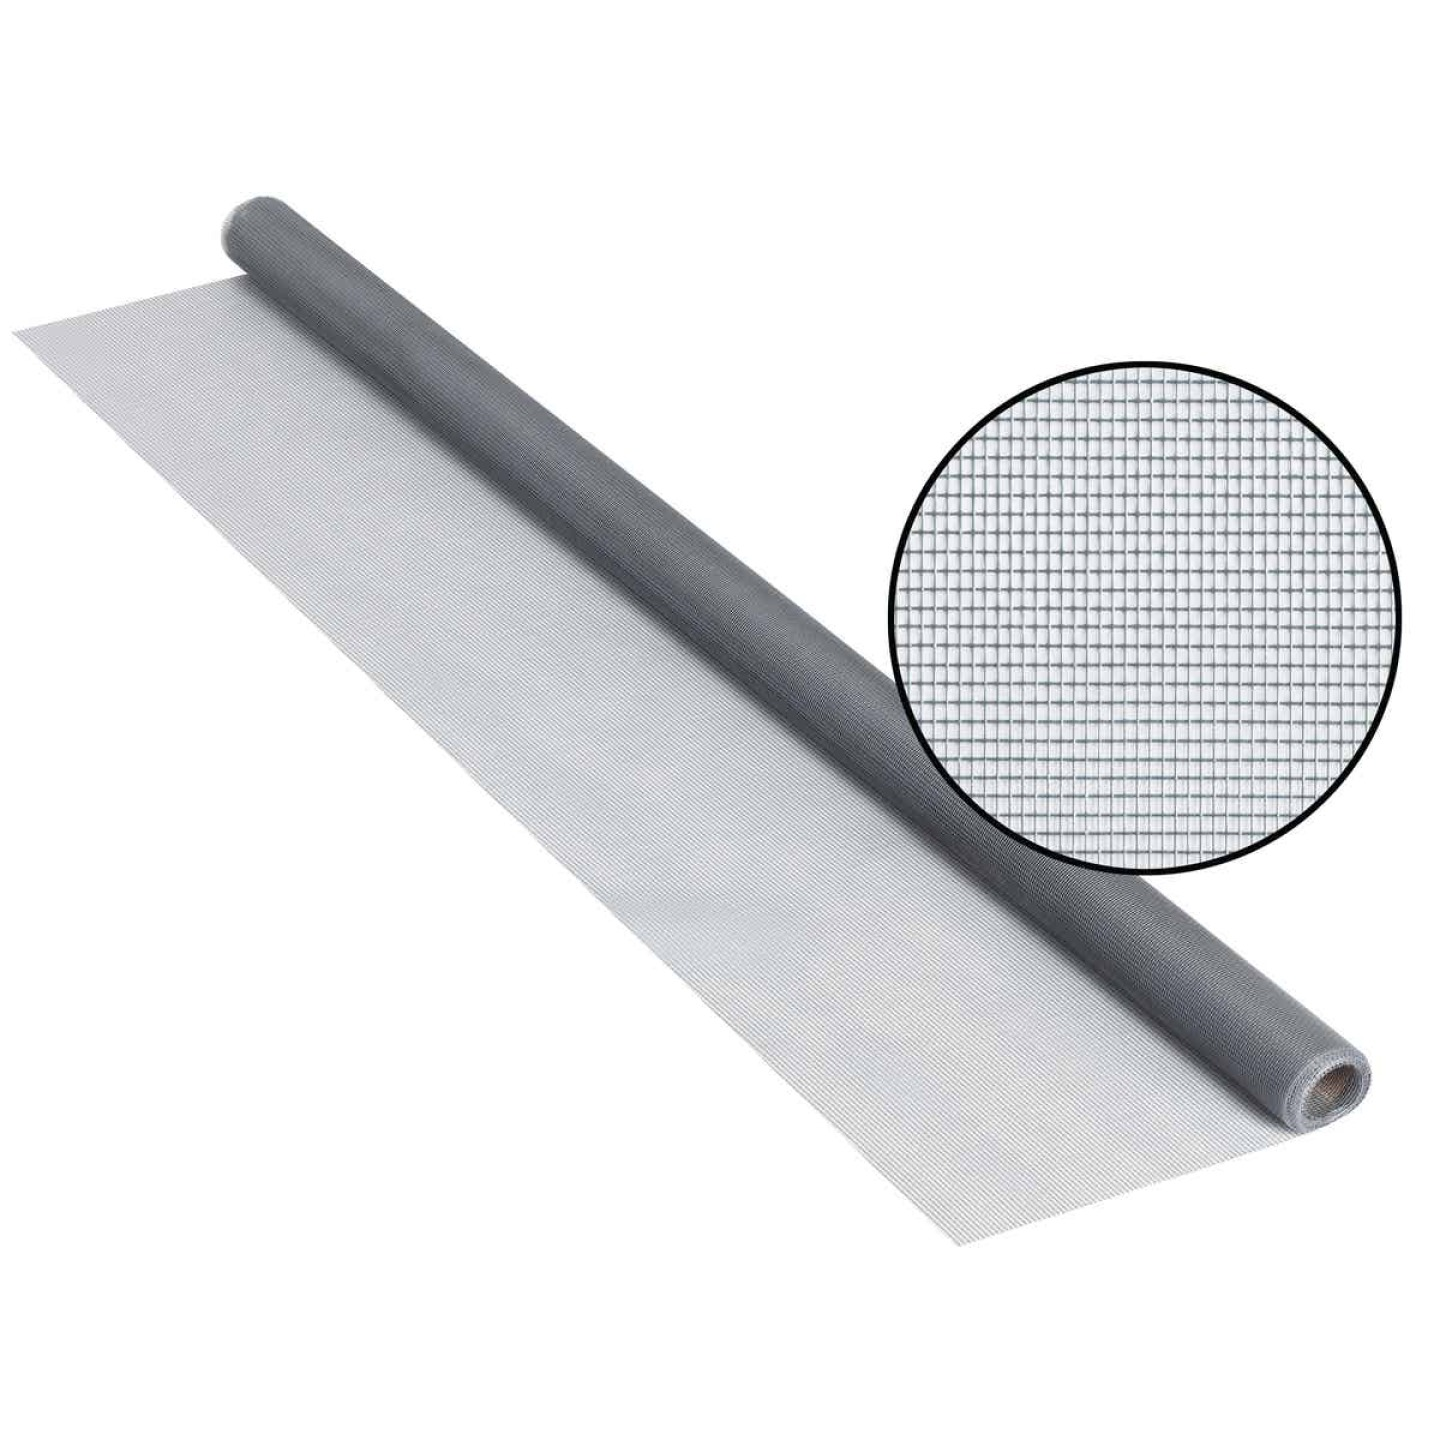 Phifer 24 In. x 84 In. Gray Fiberglass Screen Cloth Ready Rolls Image 1